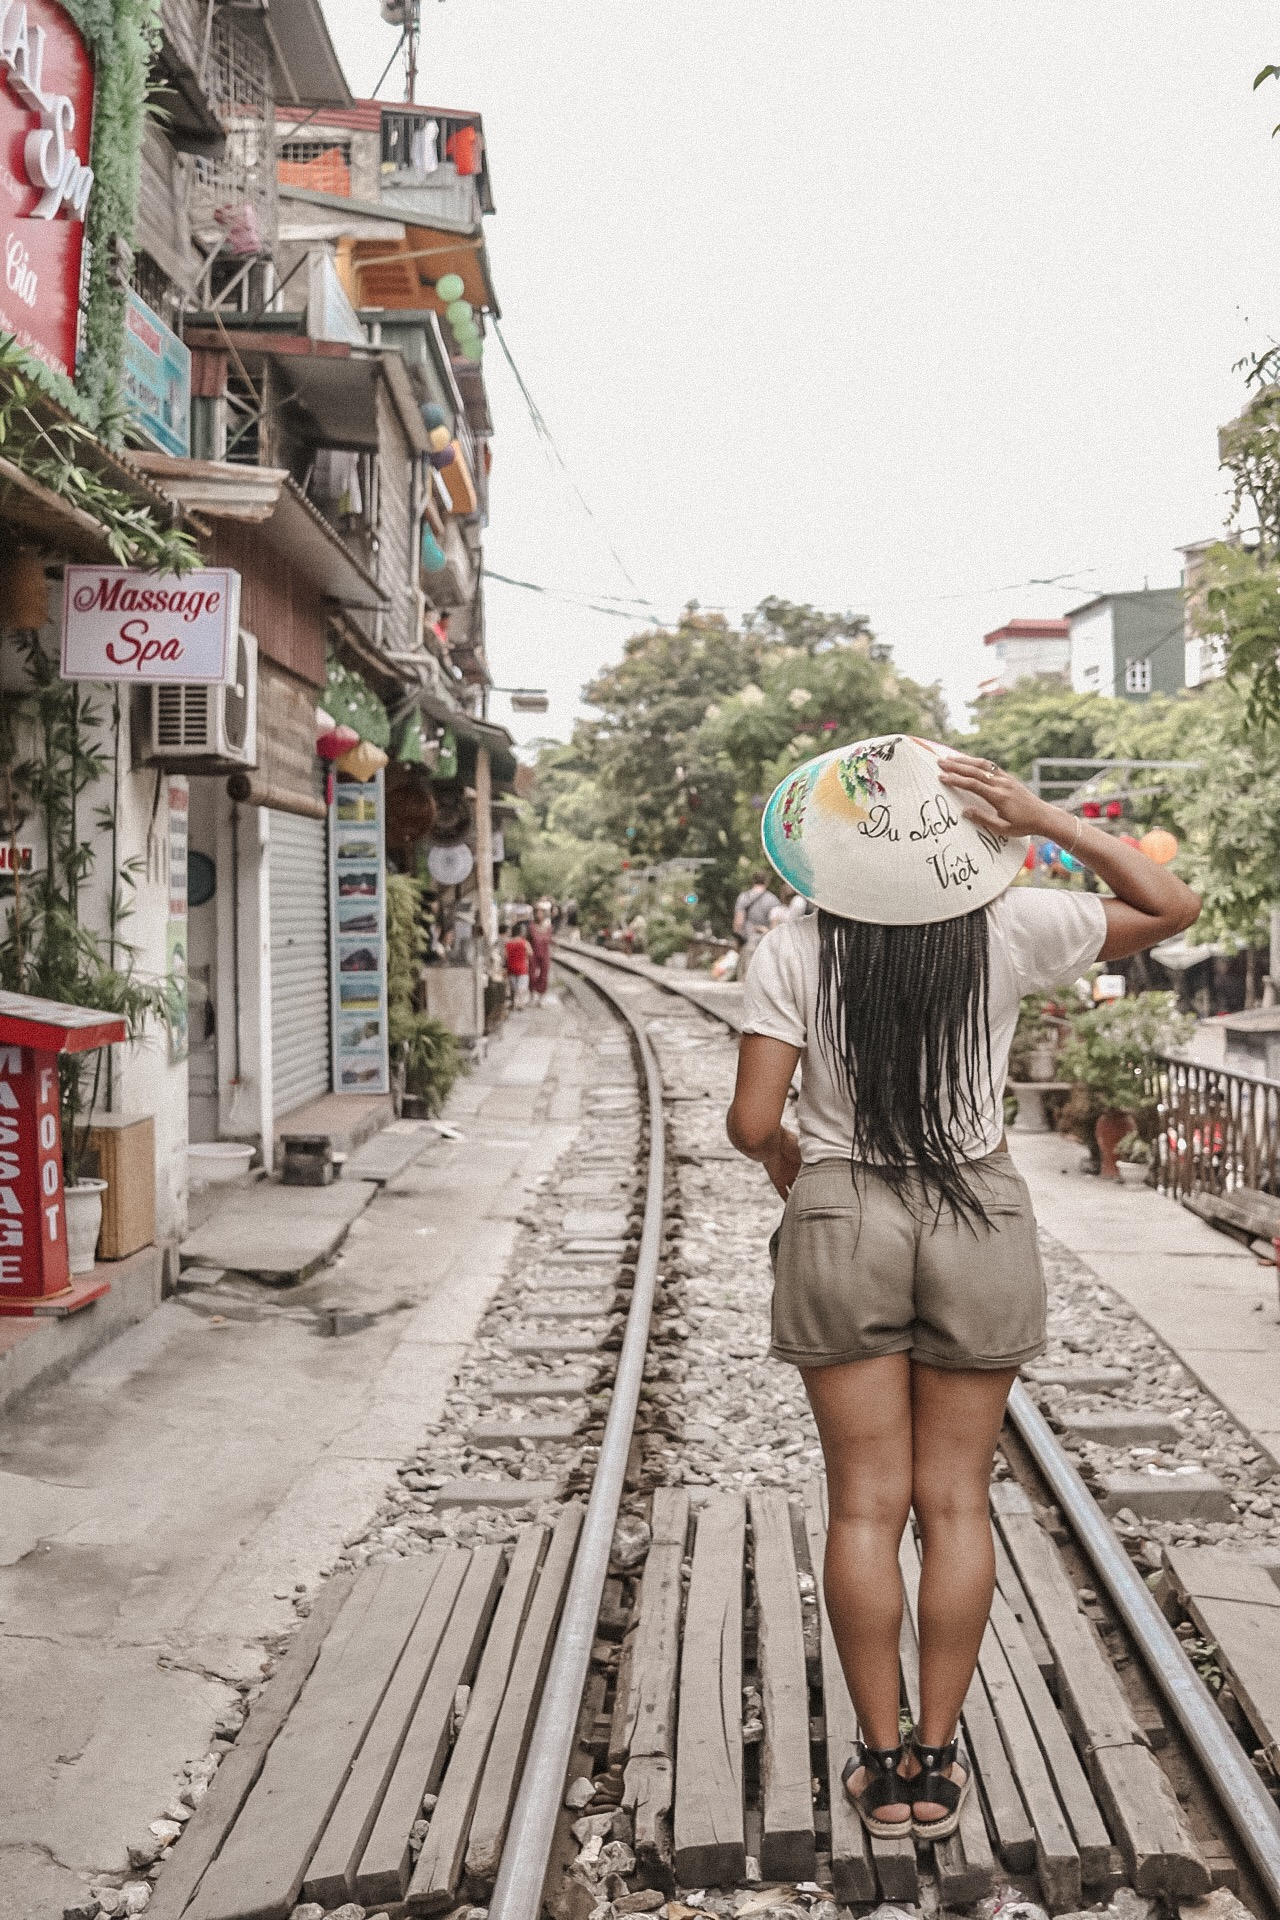 Illustrated by Sade - Visit Hanoi, Vietnam Train Street